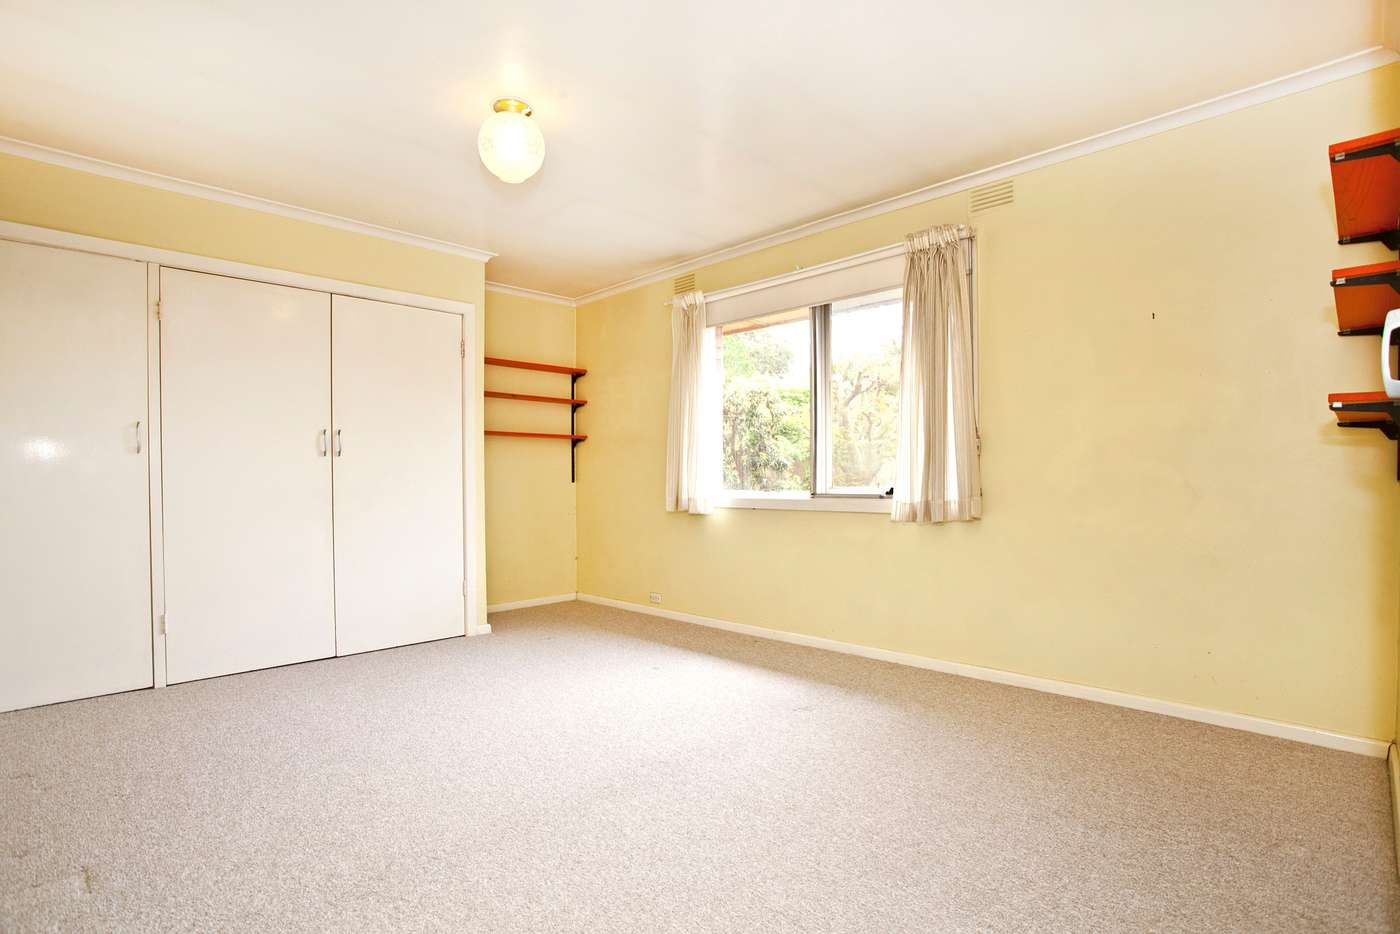 Seventh view of Homely house listing, 3 Gerrard Court, Glen Waverley VIC 3150